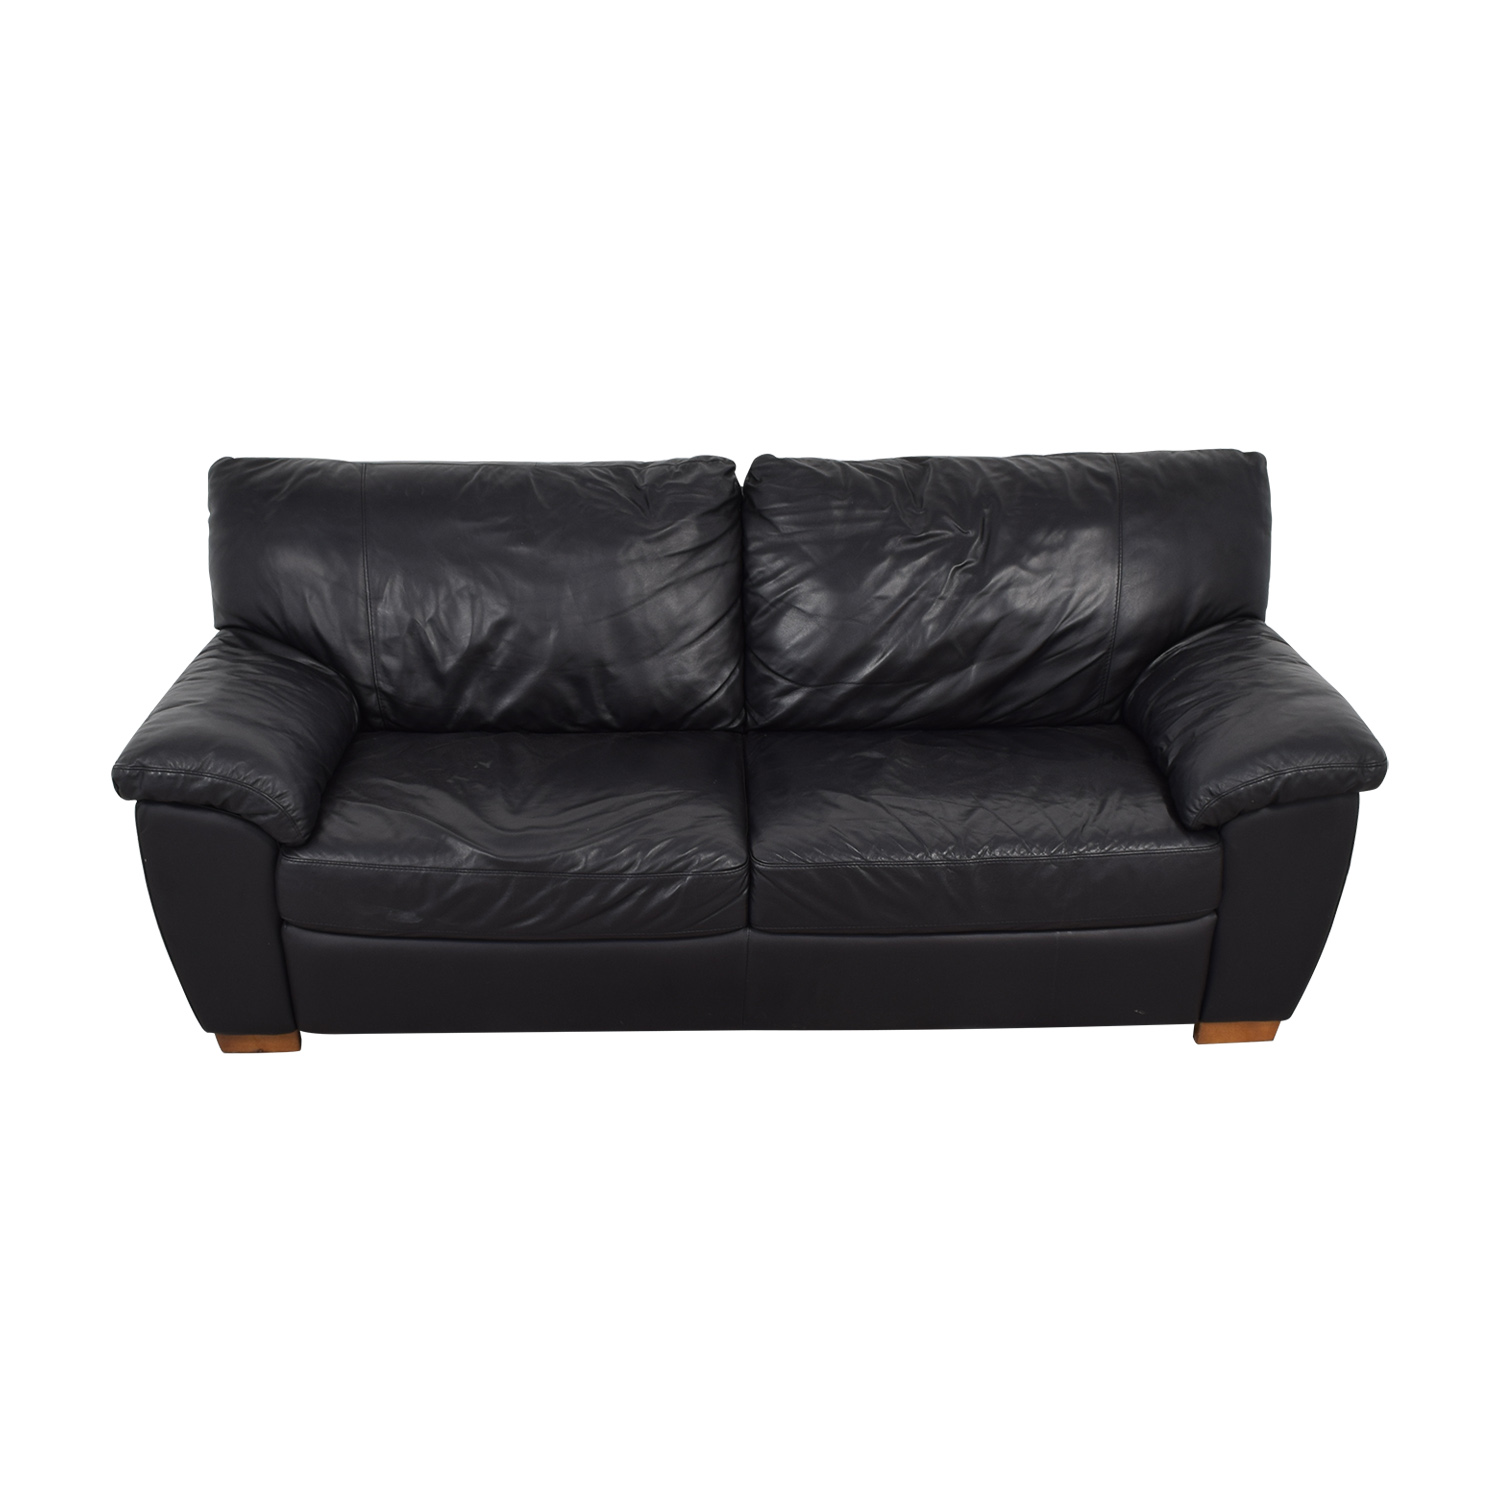 IKEA IKEA Vreta Black Leather Two-Cushion Sofa Sofas